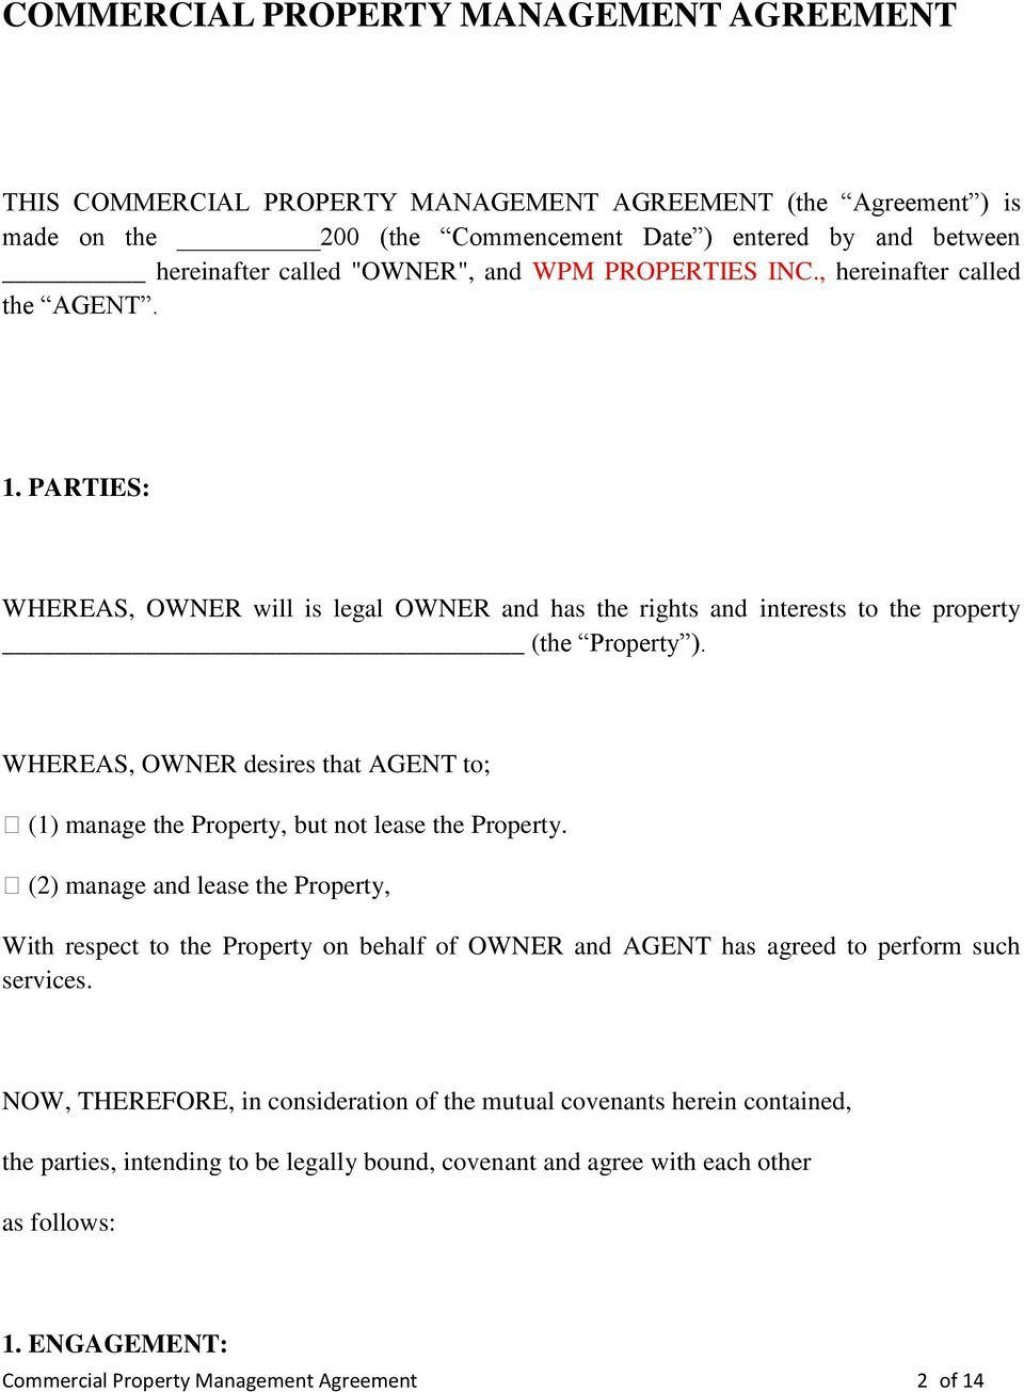 005 Imposing Property Management Contract Form Sample  Agreement Template Free UkLarge